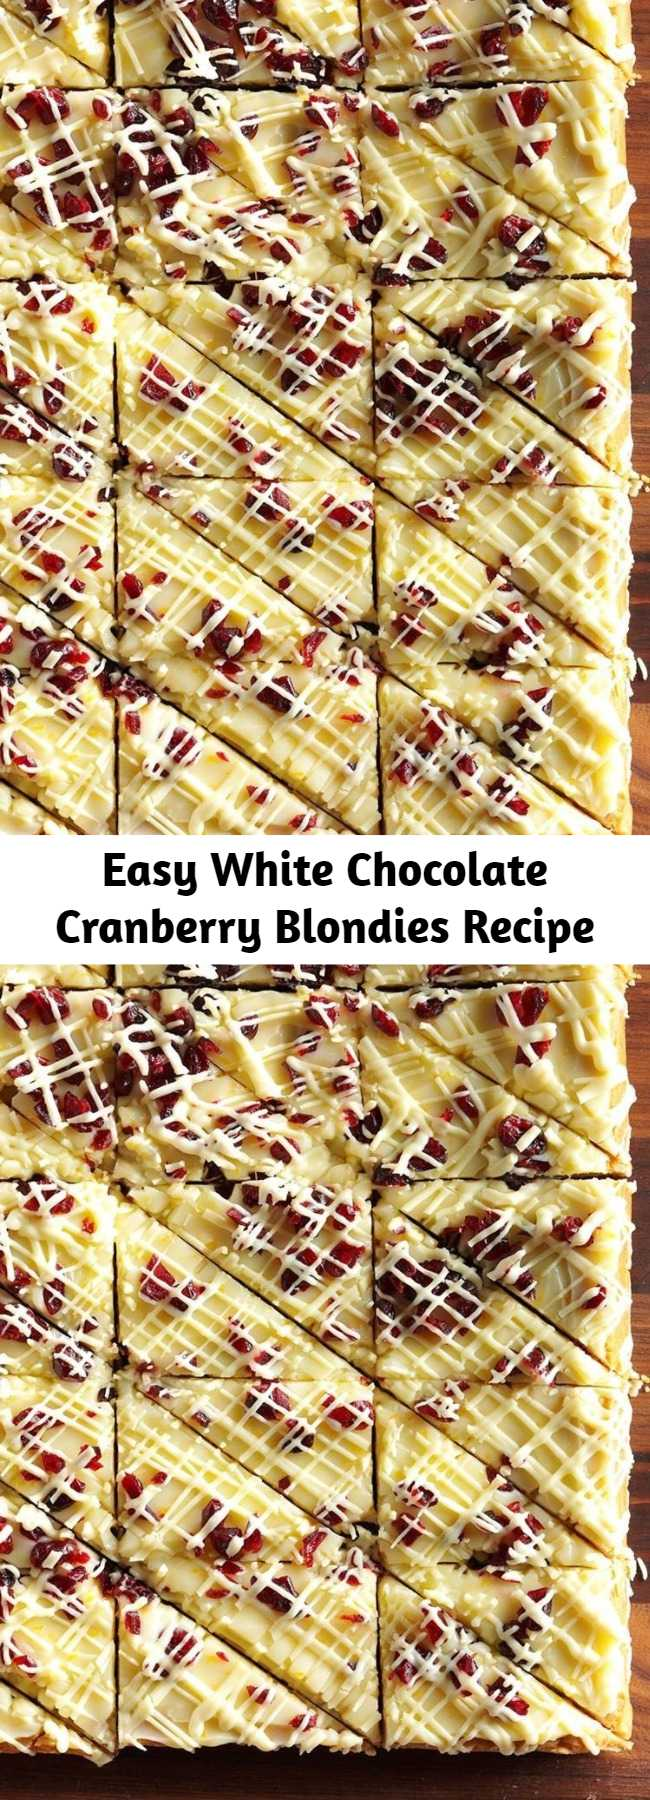 Easy White Chocolate Cranberry Blondies Recipe - For a fancier presentation, I cut the bars into triangle shapes and drizzle white chocolate over each one individually.